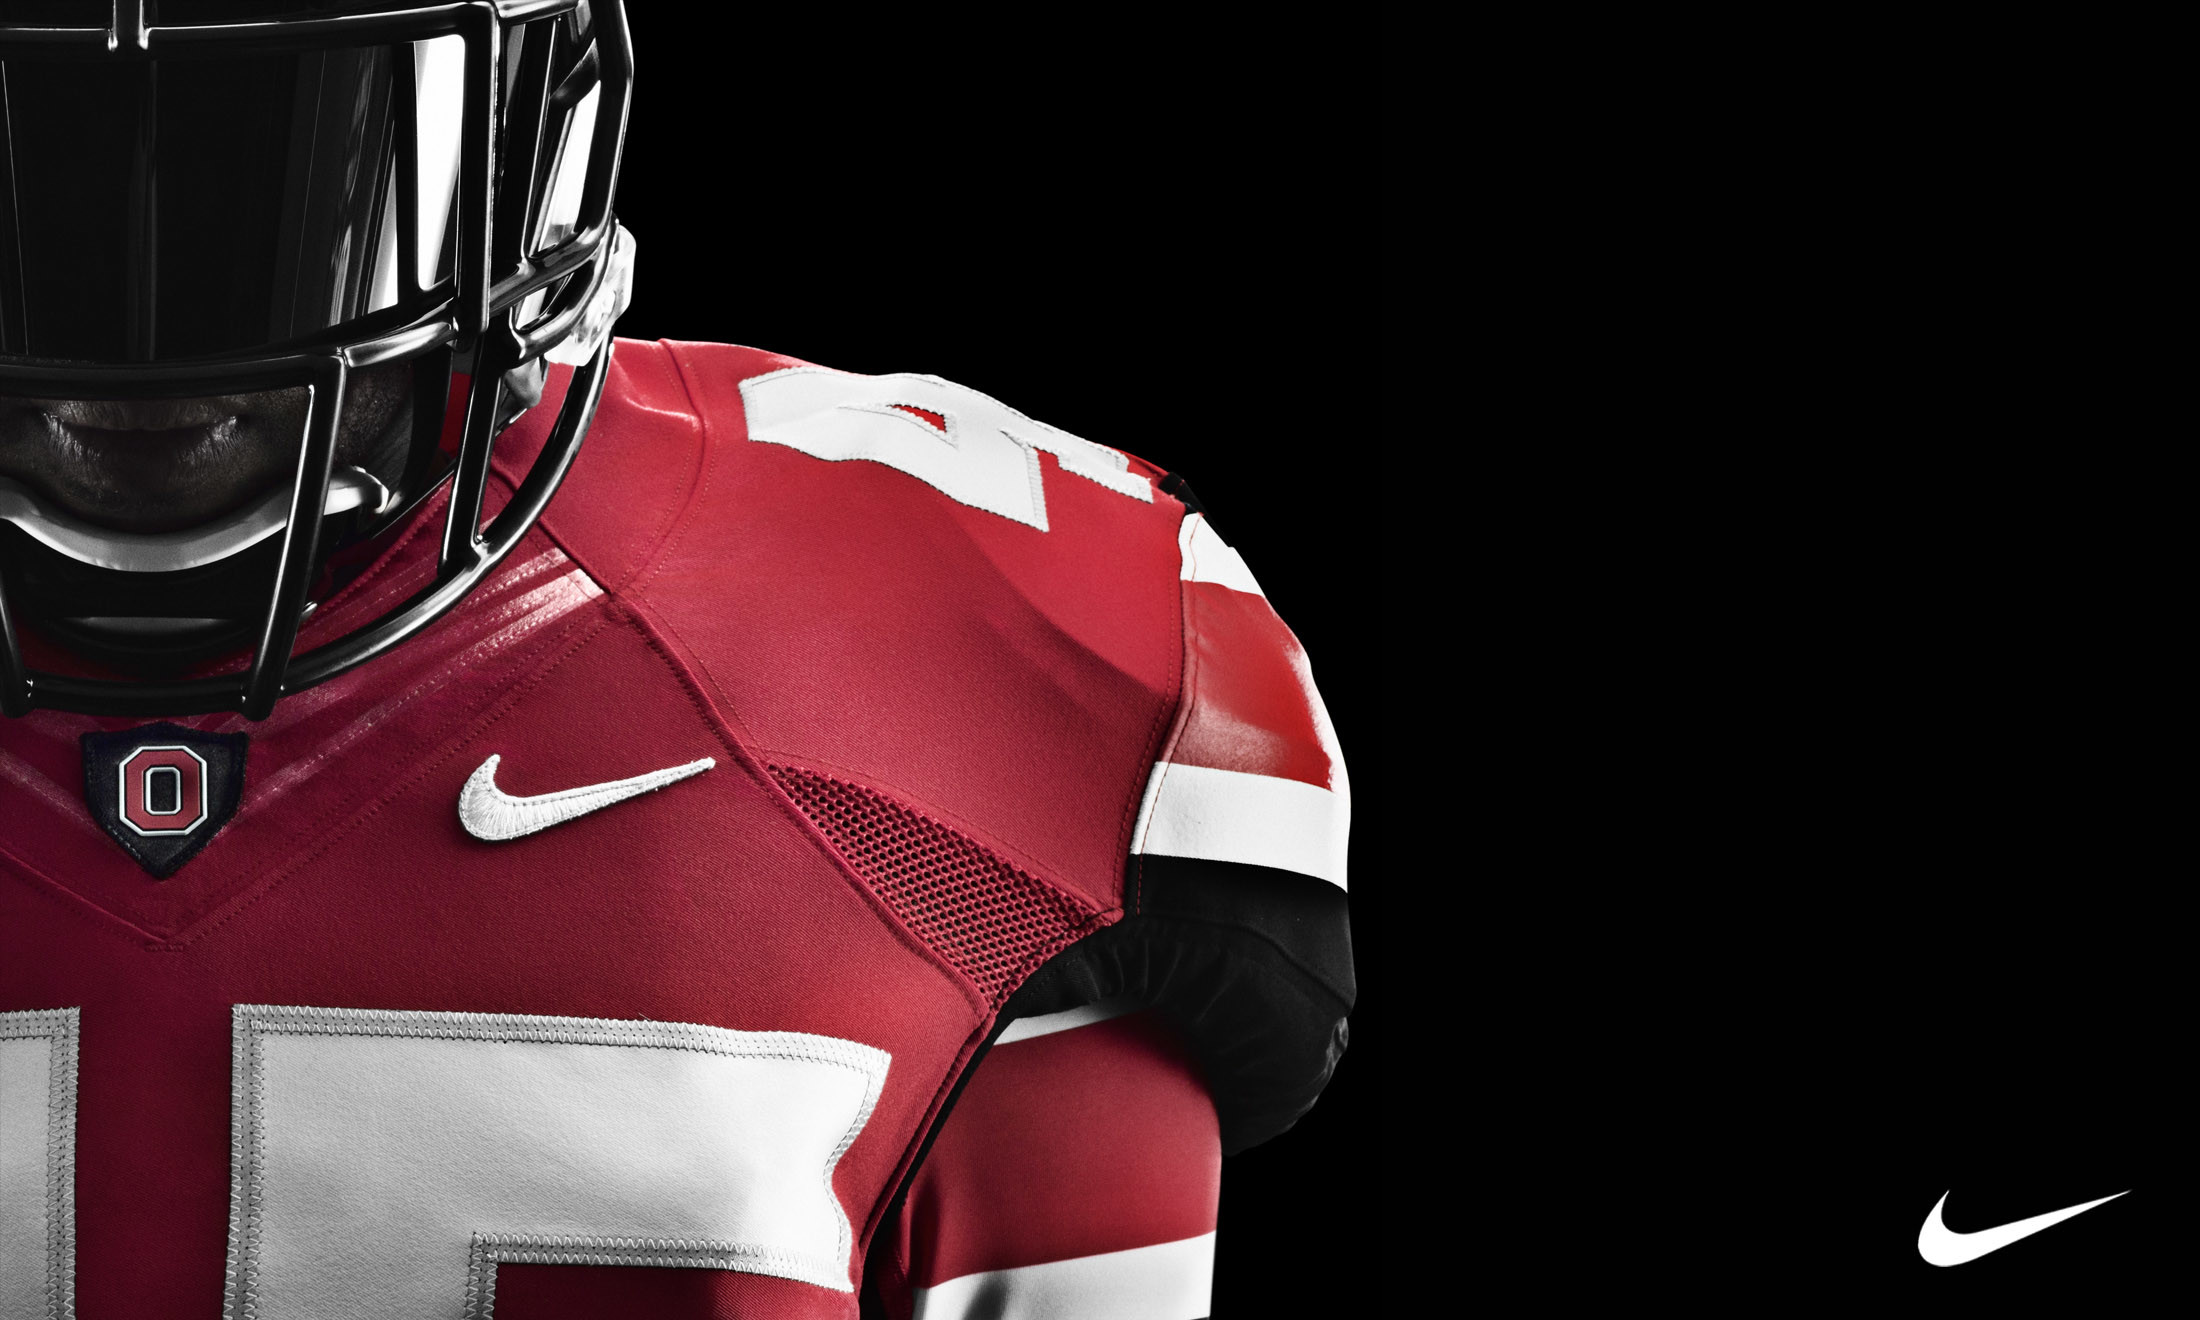 2200x1320 Nike ProCombat College Football Uniforms | HD Wallpapers | Pinterest | Nike  pro combat, Hd wallpaper and Wallpaper